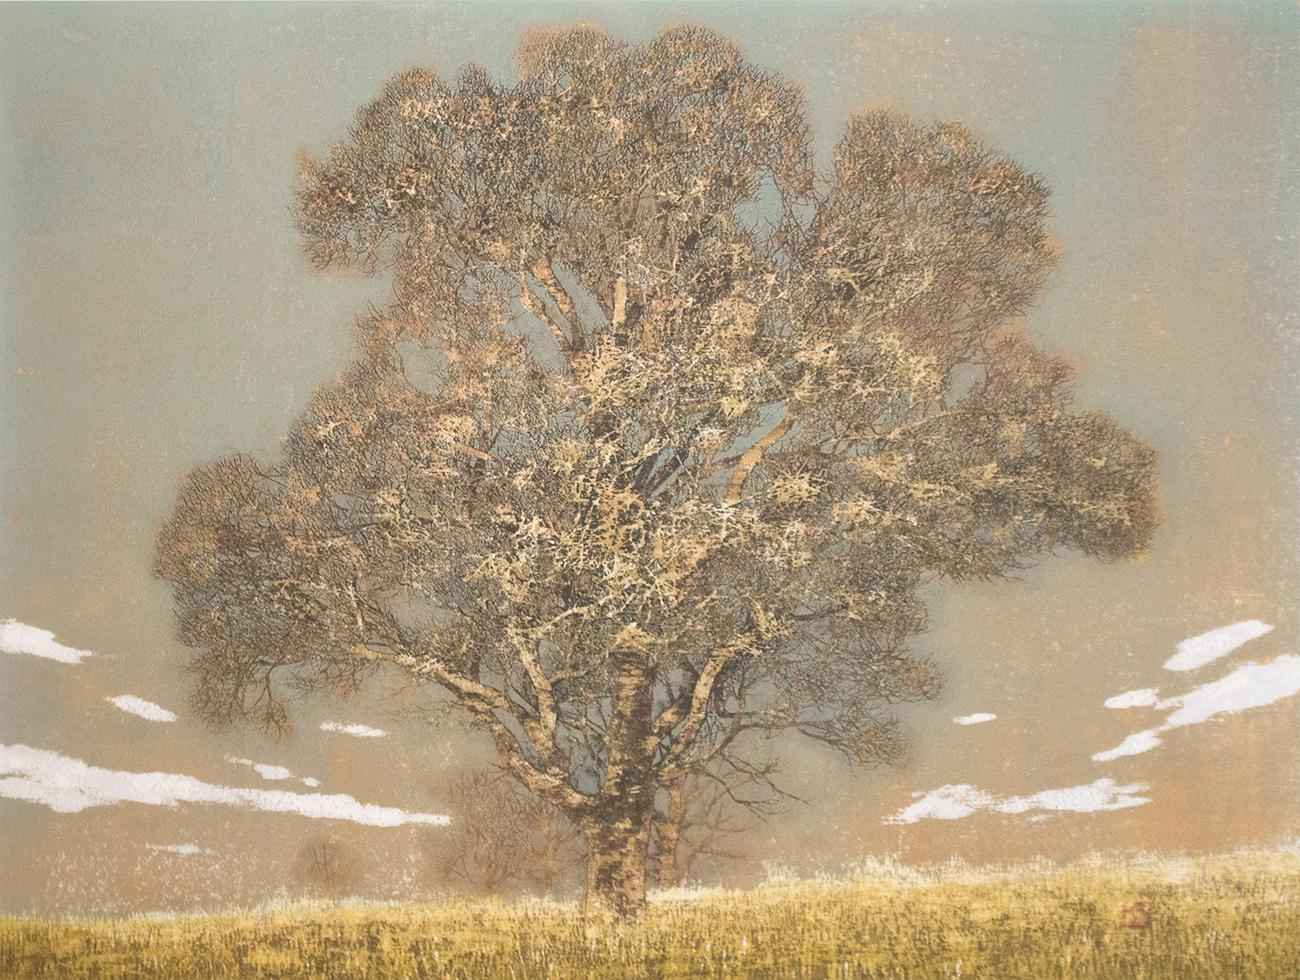 Tree in the Field (A) by  Joichi Hoshi - Masterpiece Online